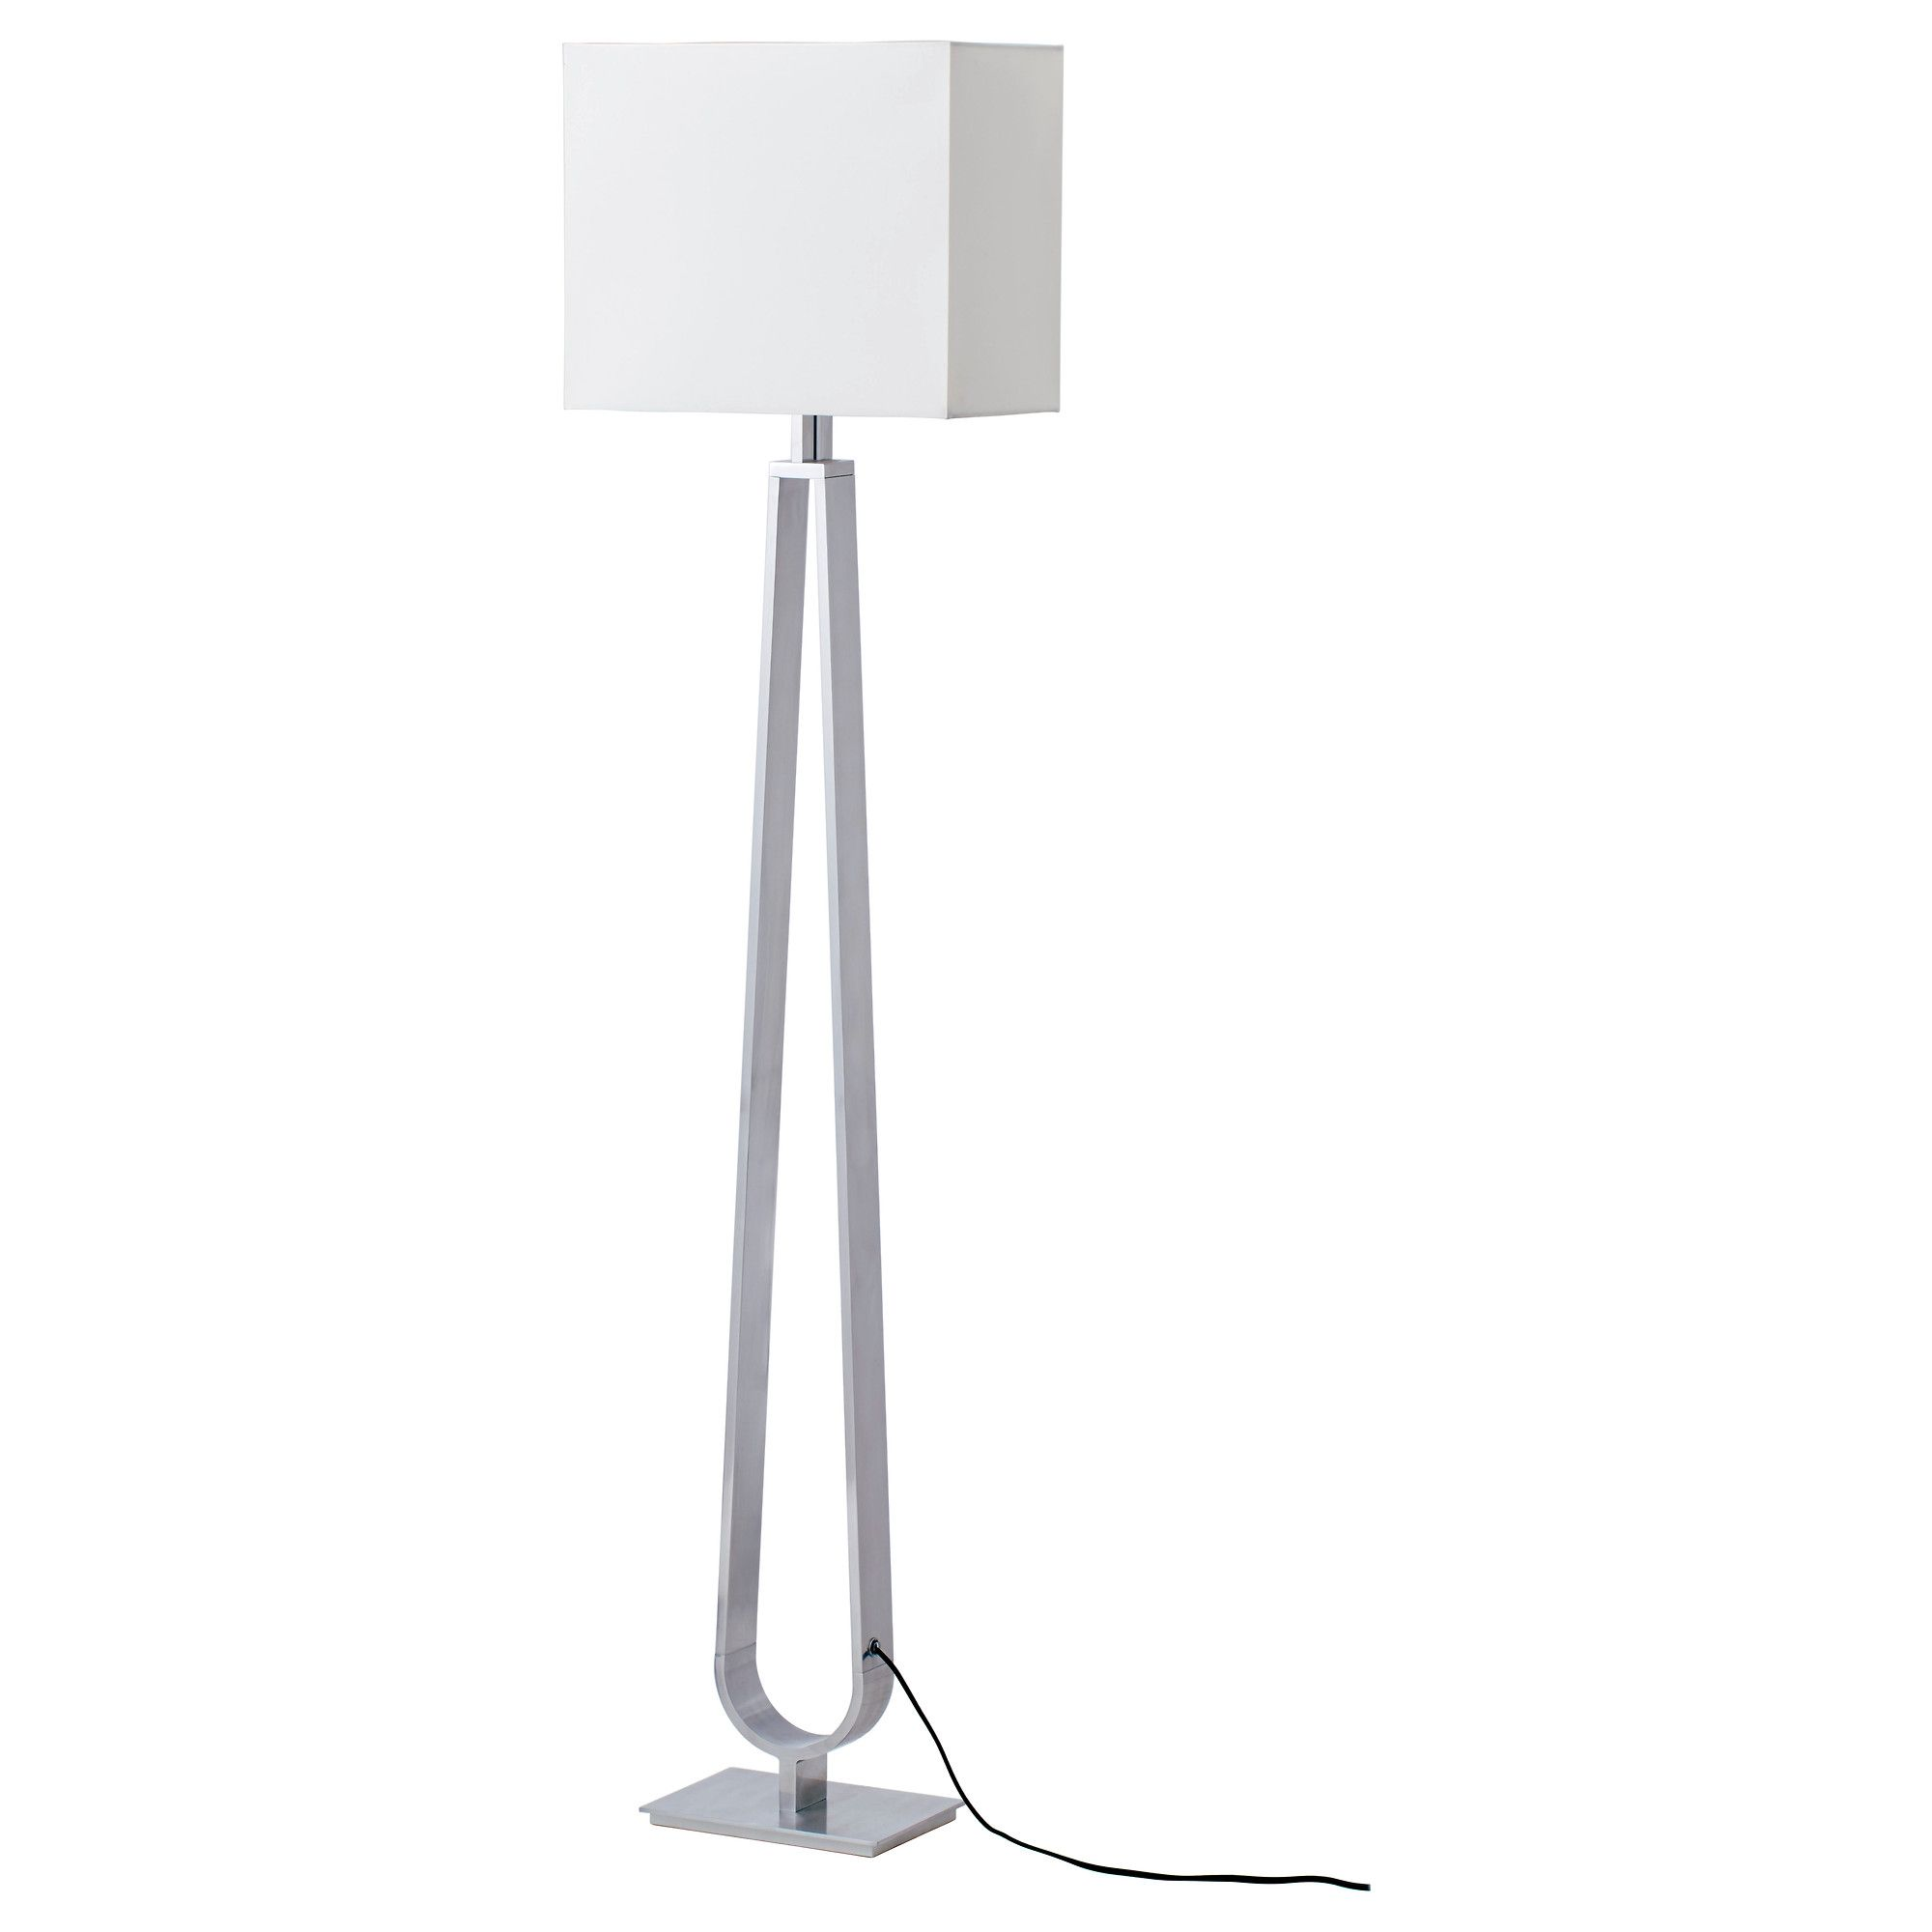 Klabb floor lamp off white floor lamp bulbs and house ikea klabb floor lamp off white as the light can be dimmed you are able to choose lighting suitable for every occasion mozeypictures Choice Image